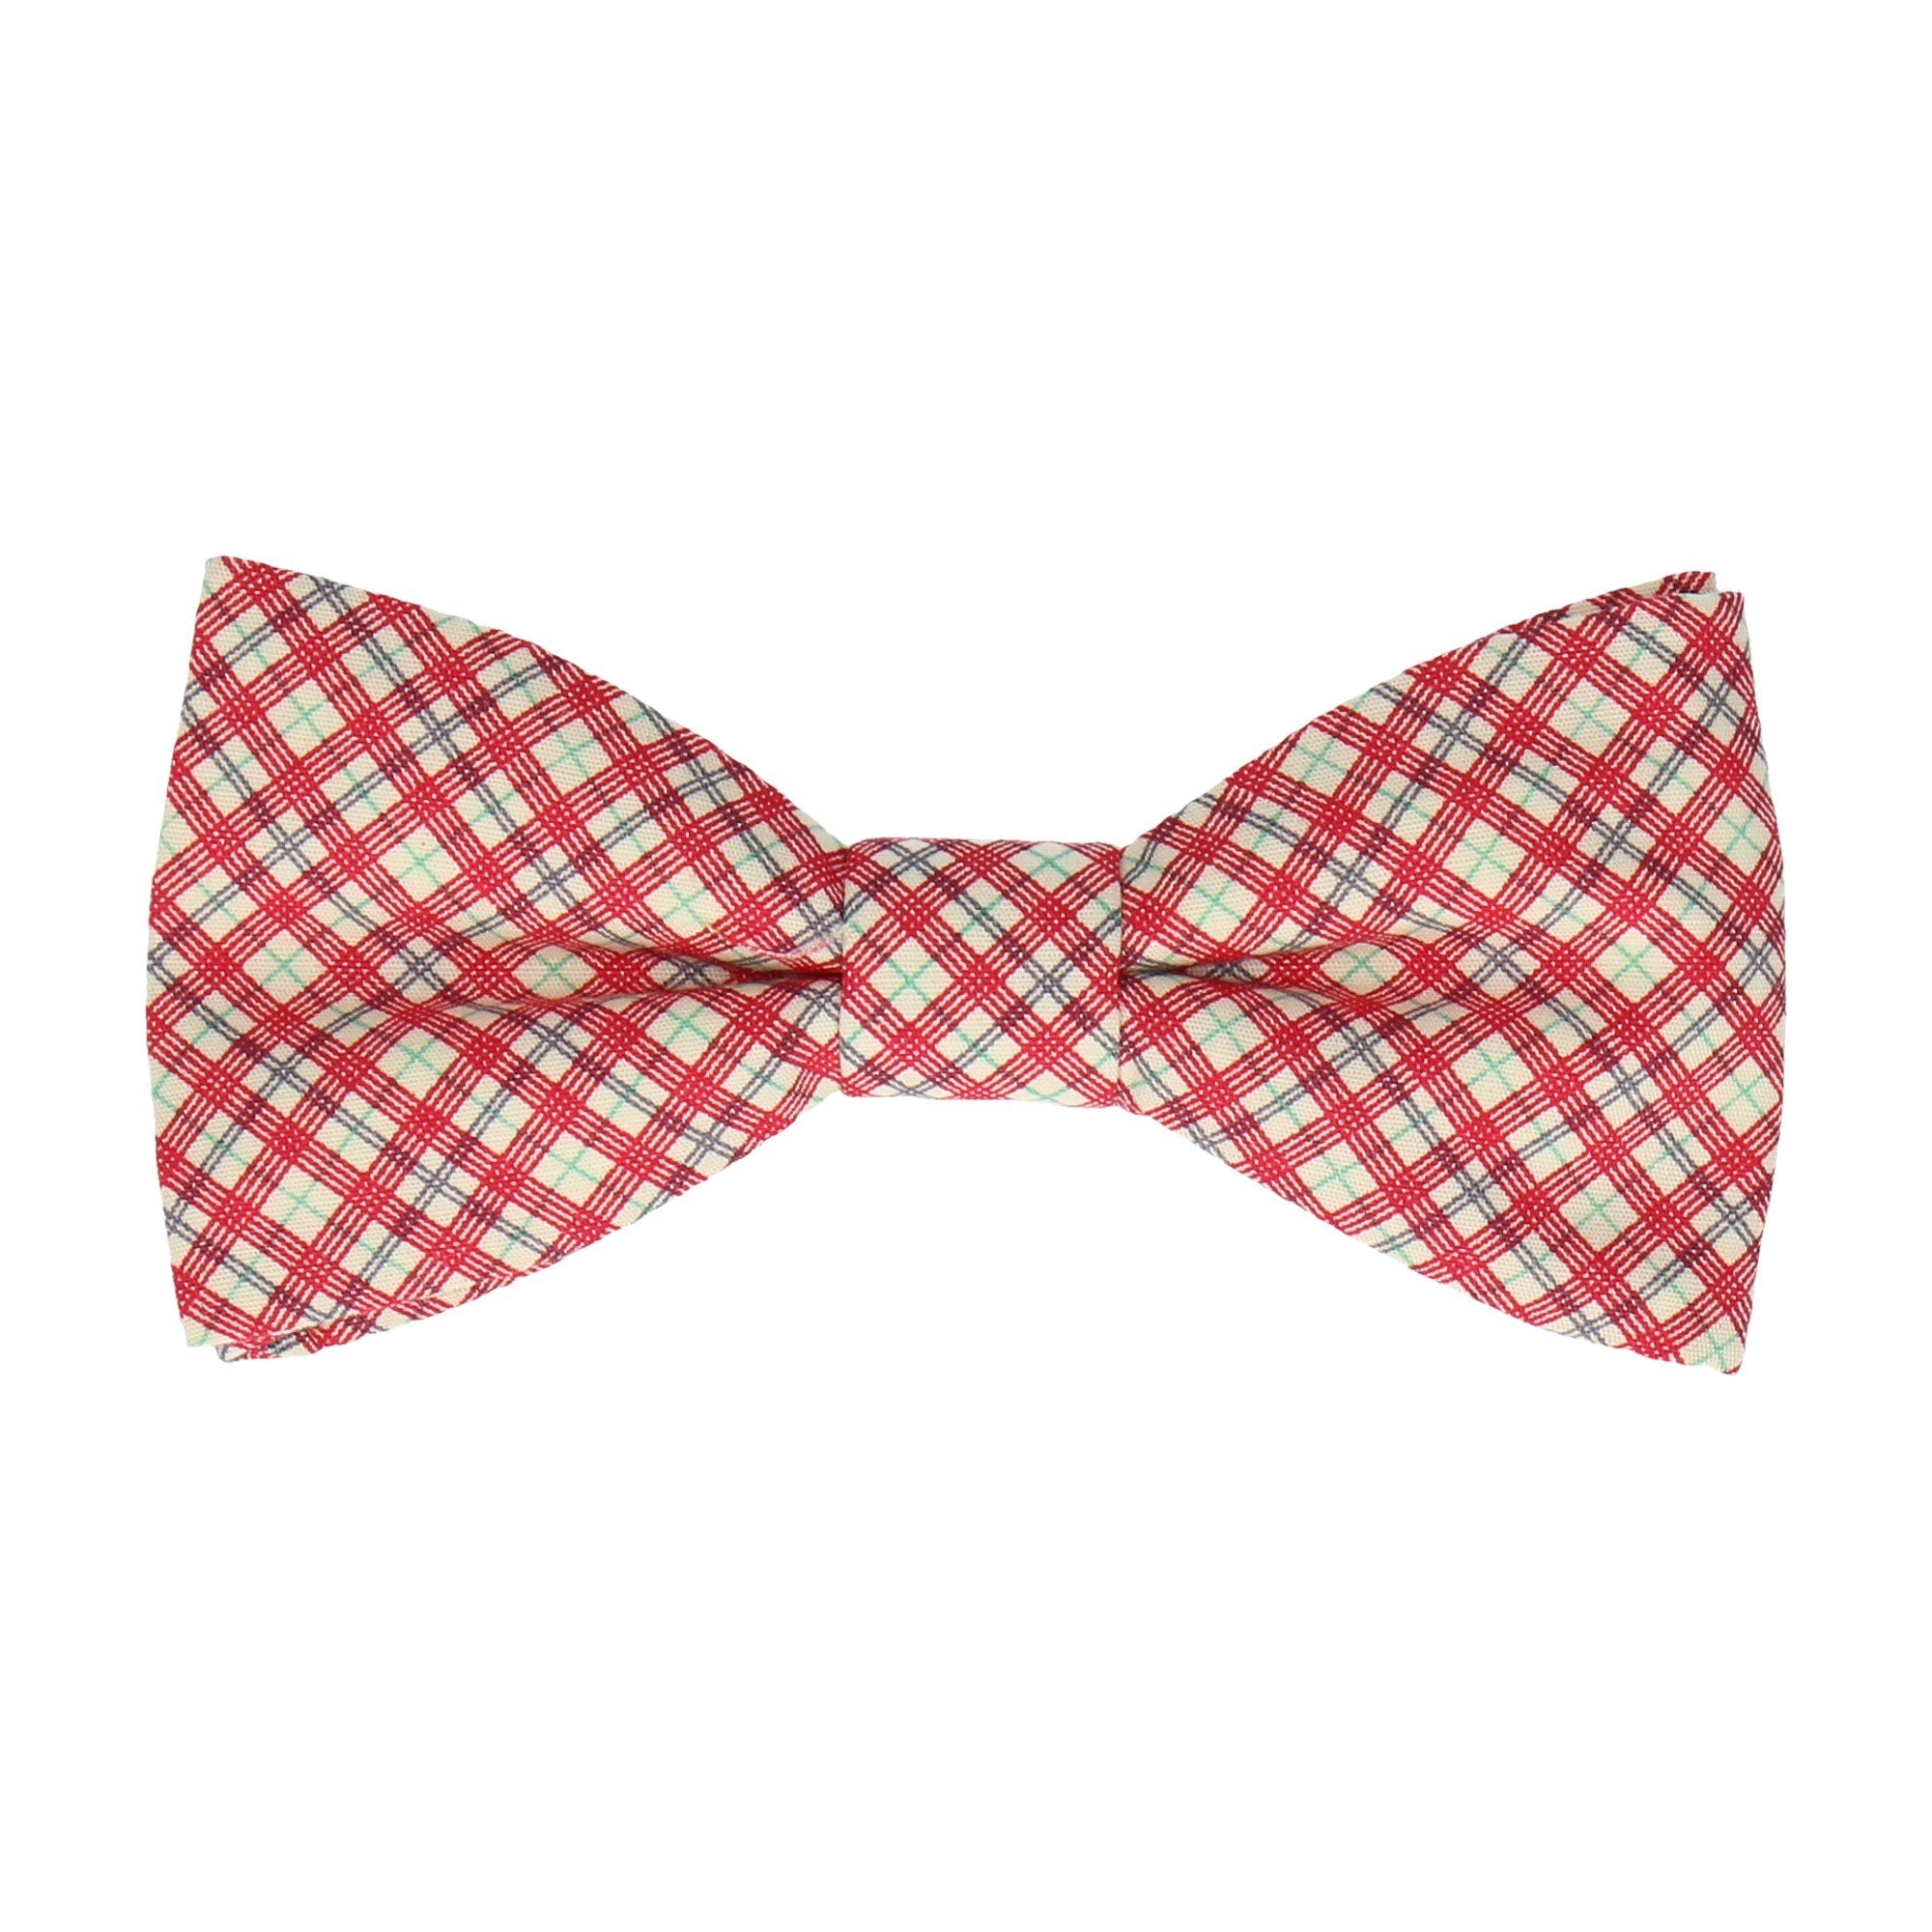 Stornoway in Red Bow Tie